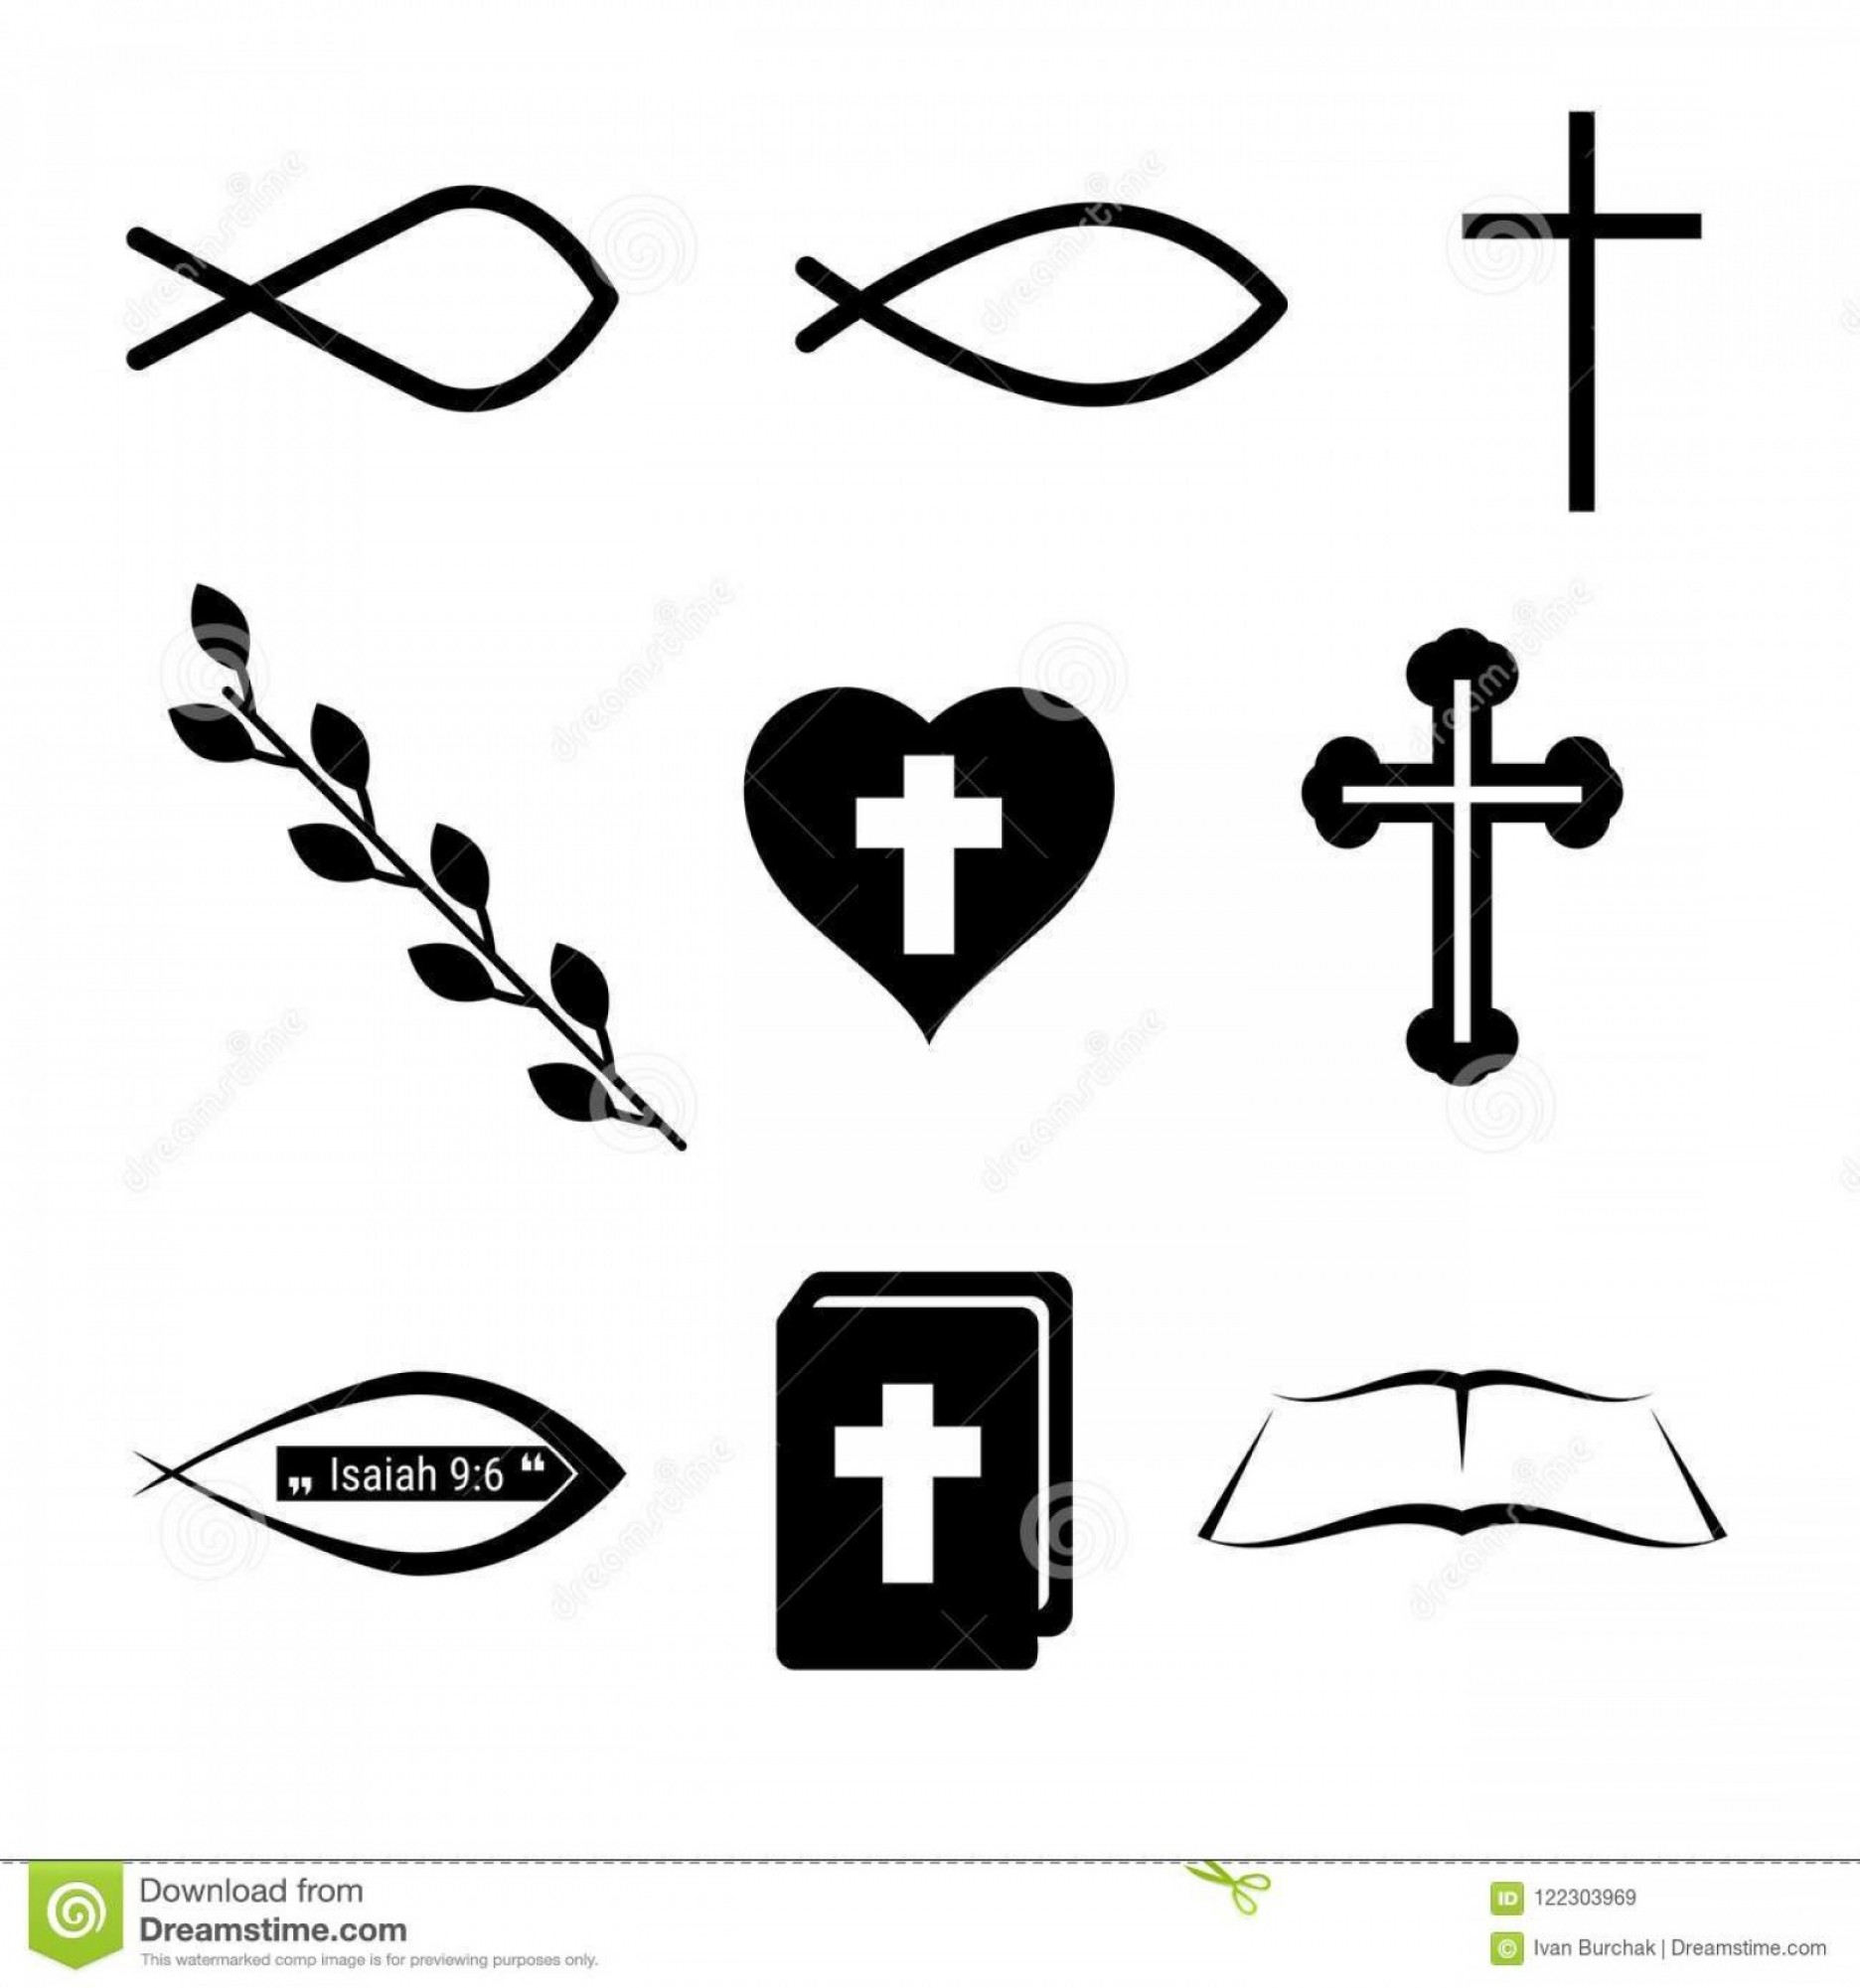 Christ Fish Vector: Christian Icons Symbols Fish Cross Heart Wine Holy Bible Vector Design Elements Set You Design Christian Icons Image